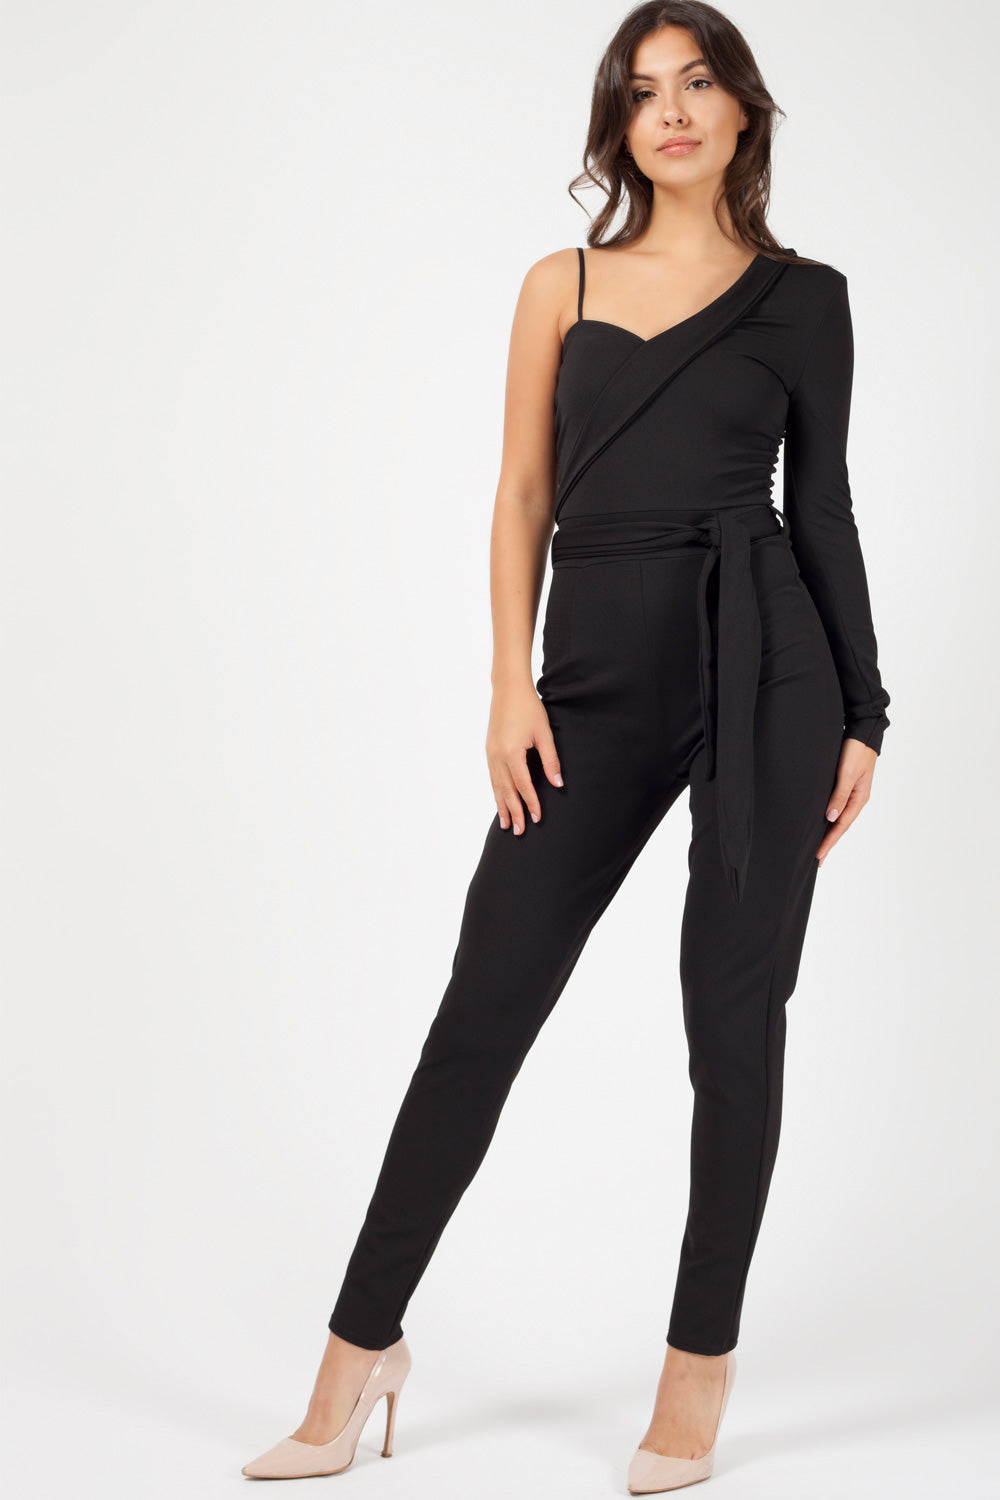 black jumpsuit uk